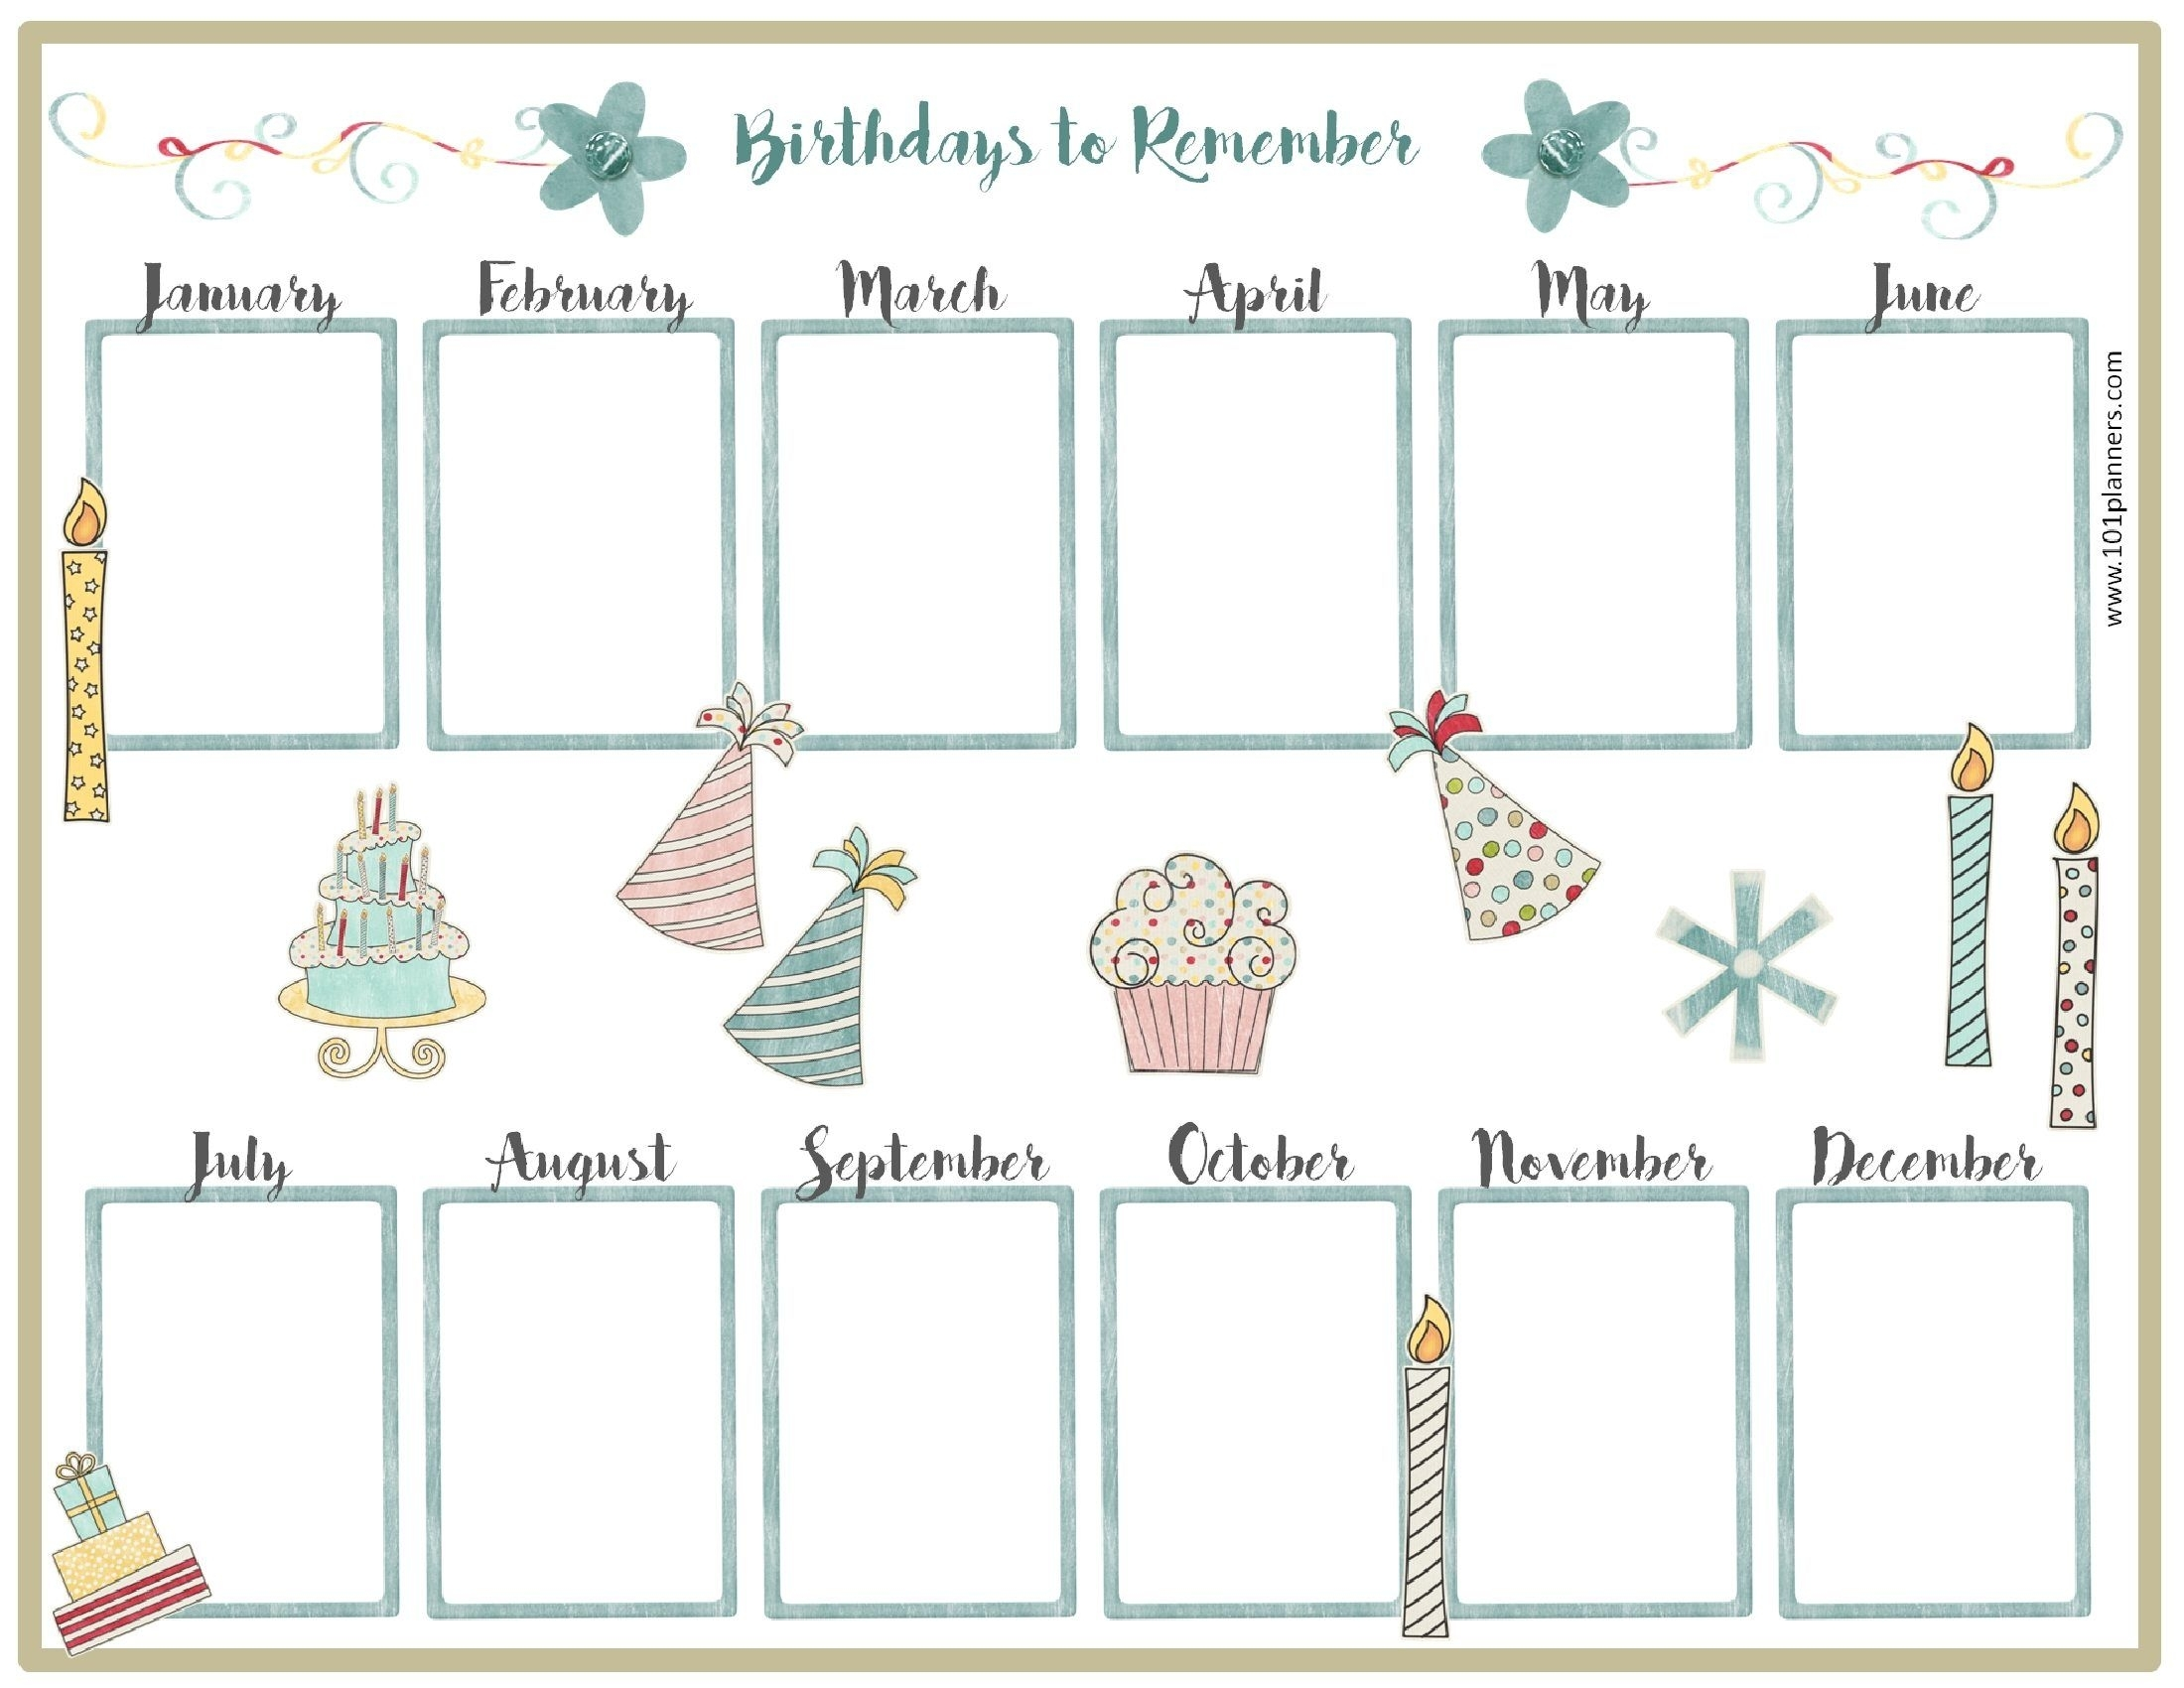 Free Birthday Calendar | Birthday Calendar | Birthday Calendar for Free Images Of Birthday Calanders